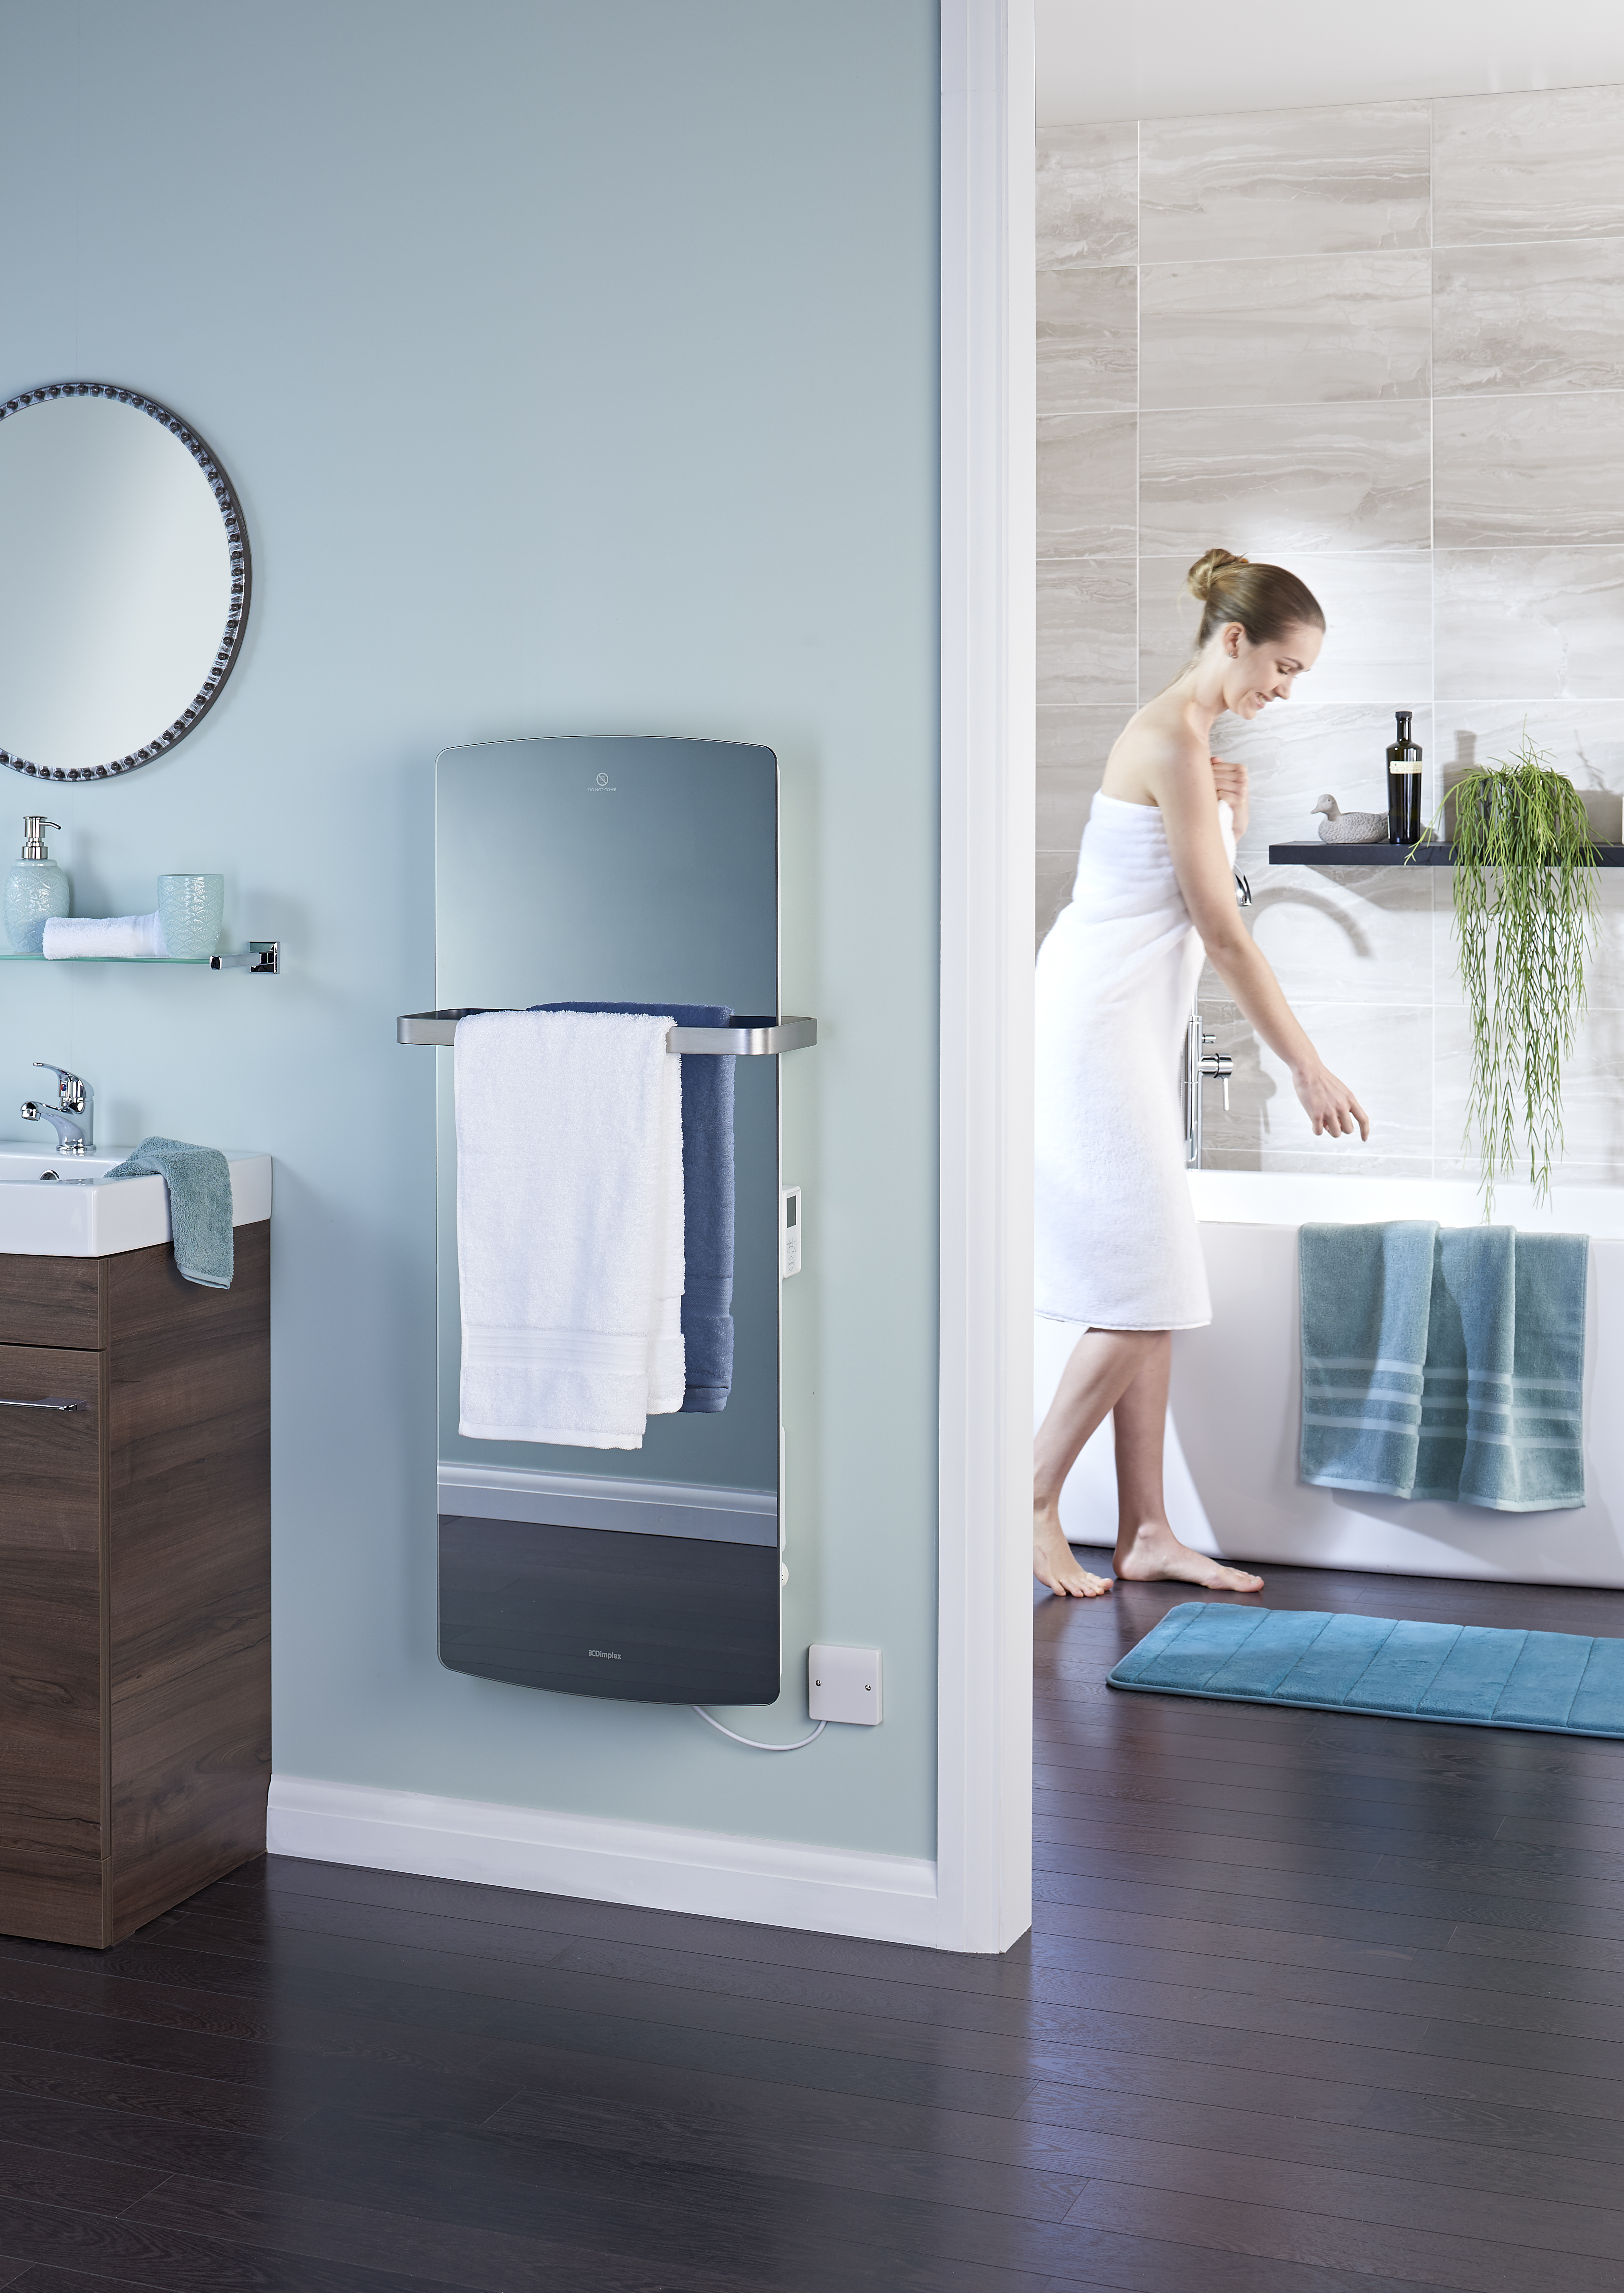 Bathroom heater infrared electric new heaters for washrooms wall - Five Affordable Ways To Transform Your Bathroom